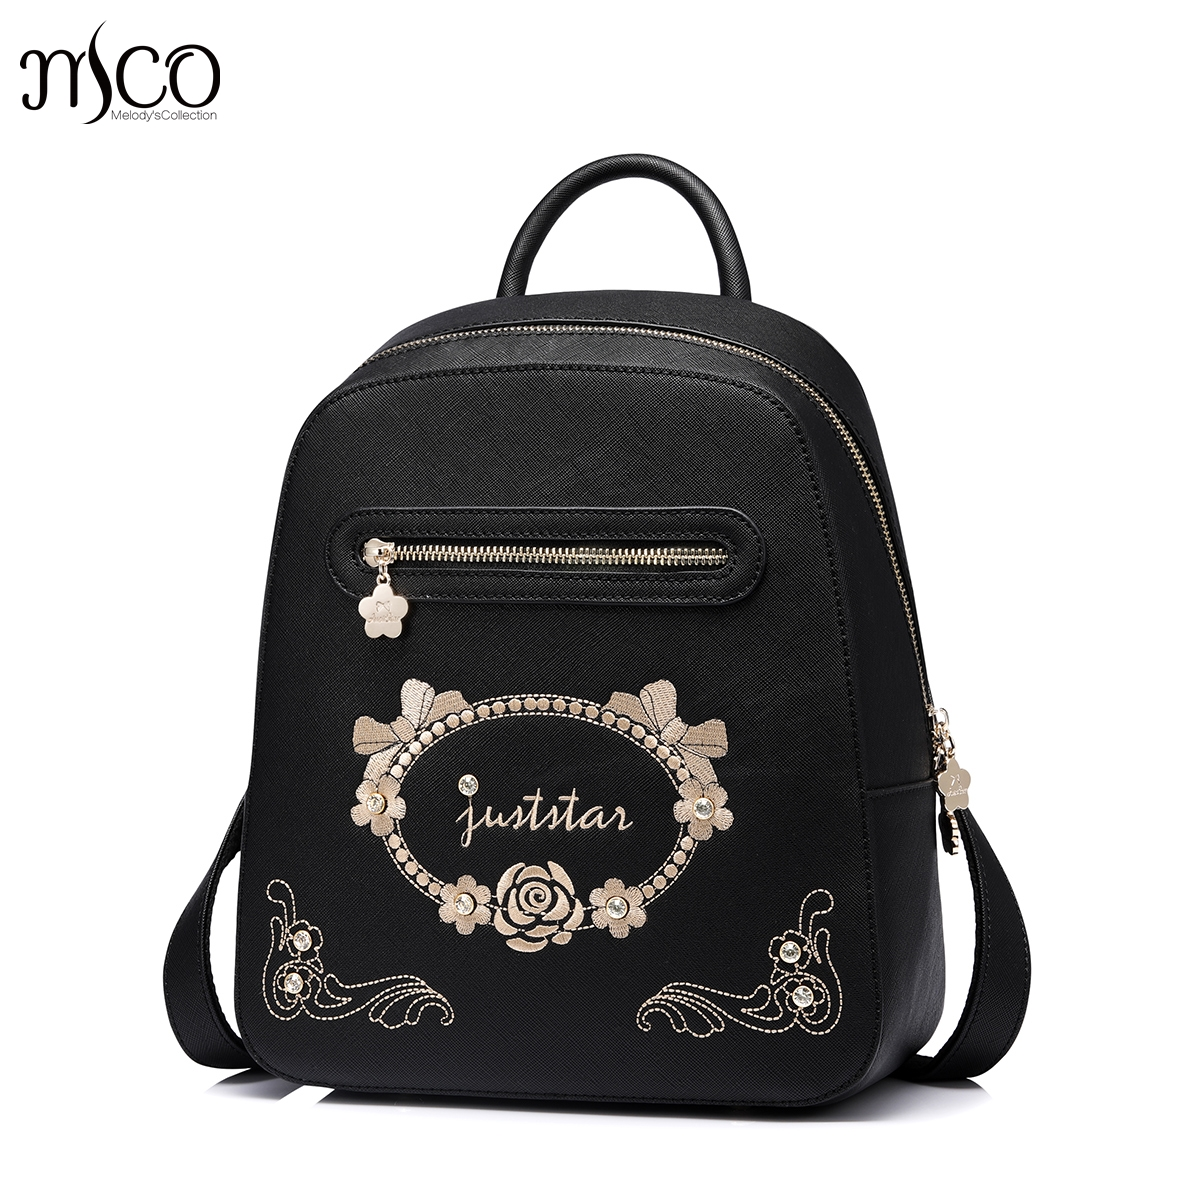 Fashion Embroidery Girl Backpacks Cute School Bags New Women Backpack PU Leather Female Shoulder Bag mochilas mujer 2017